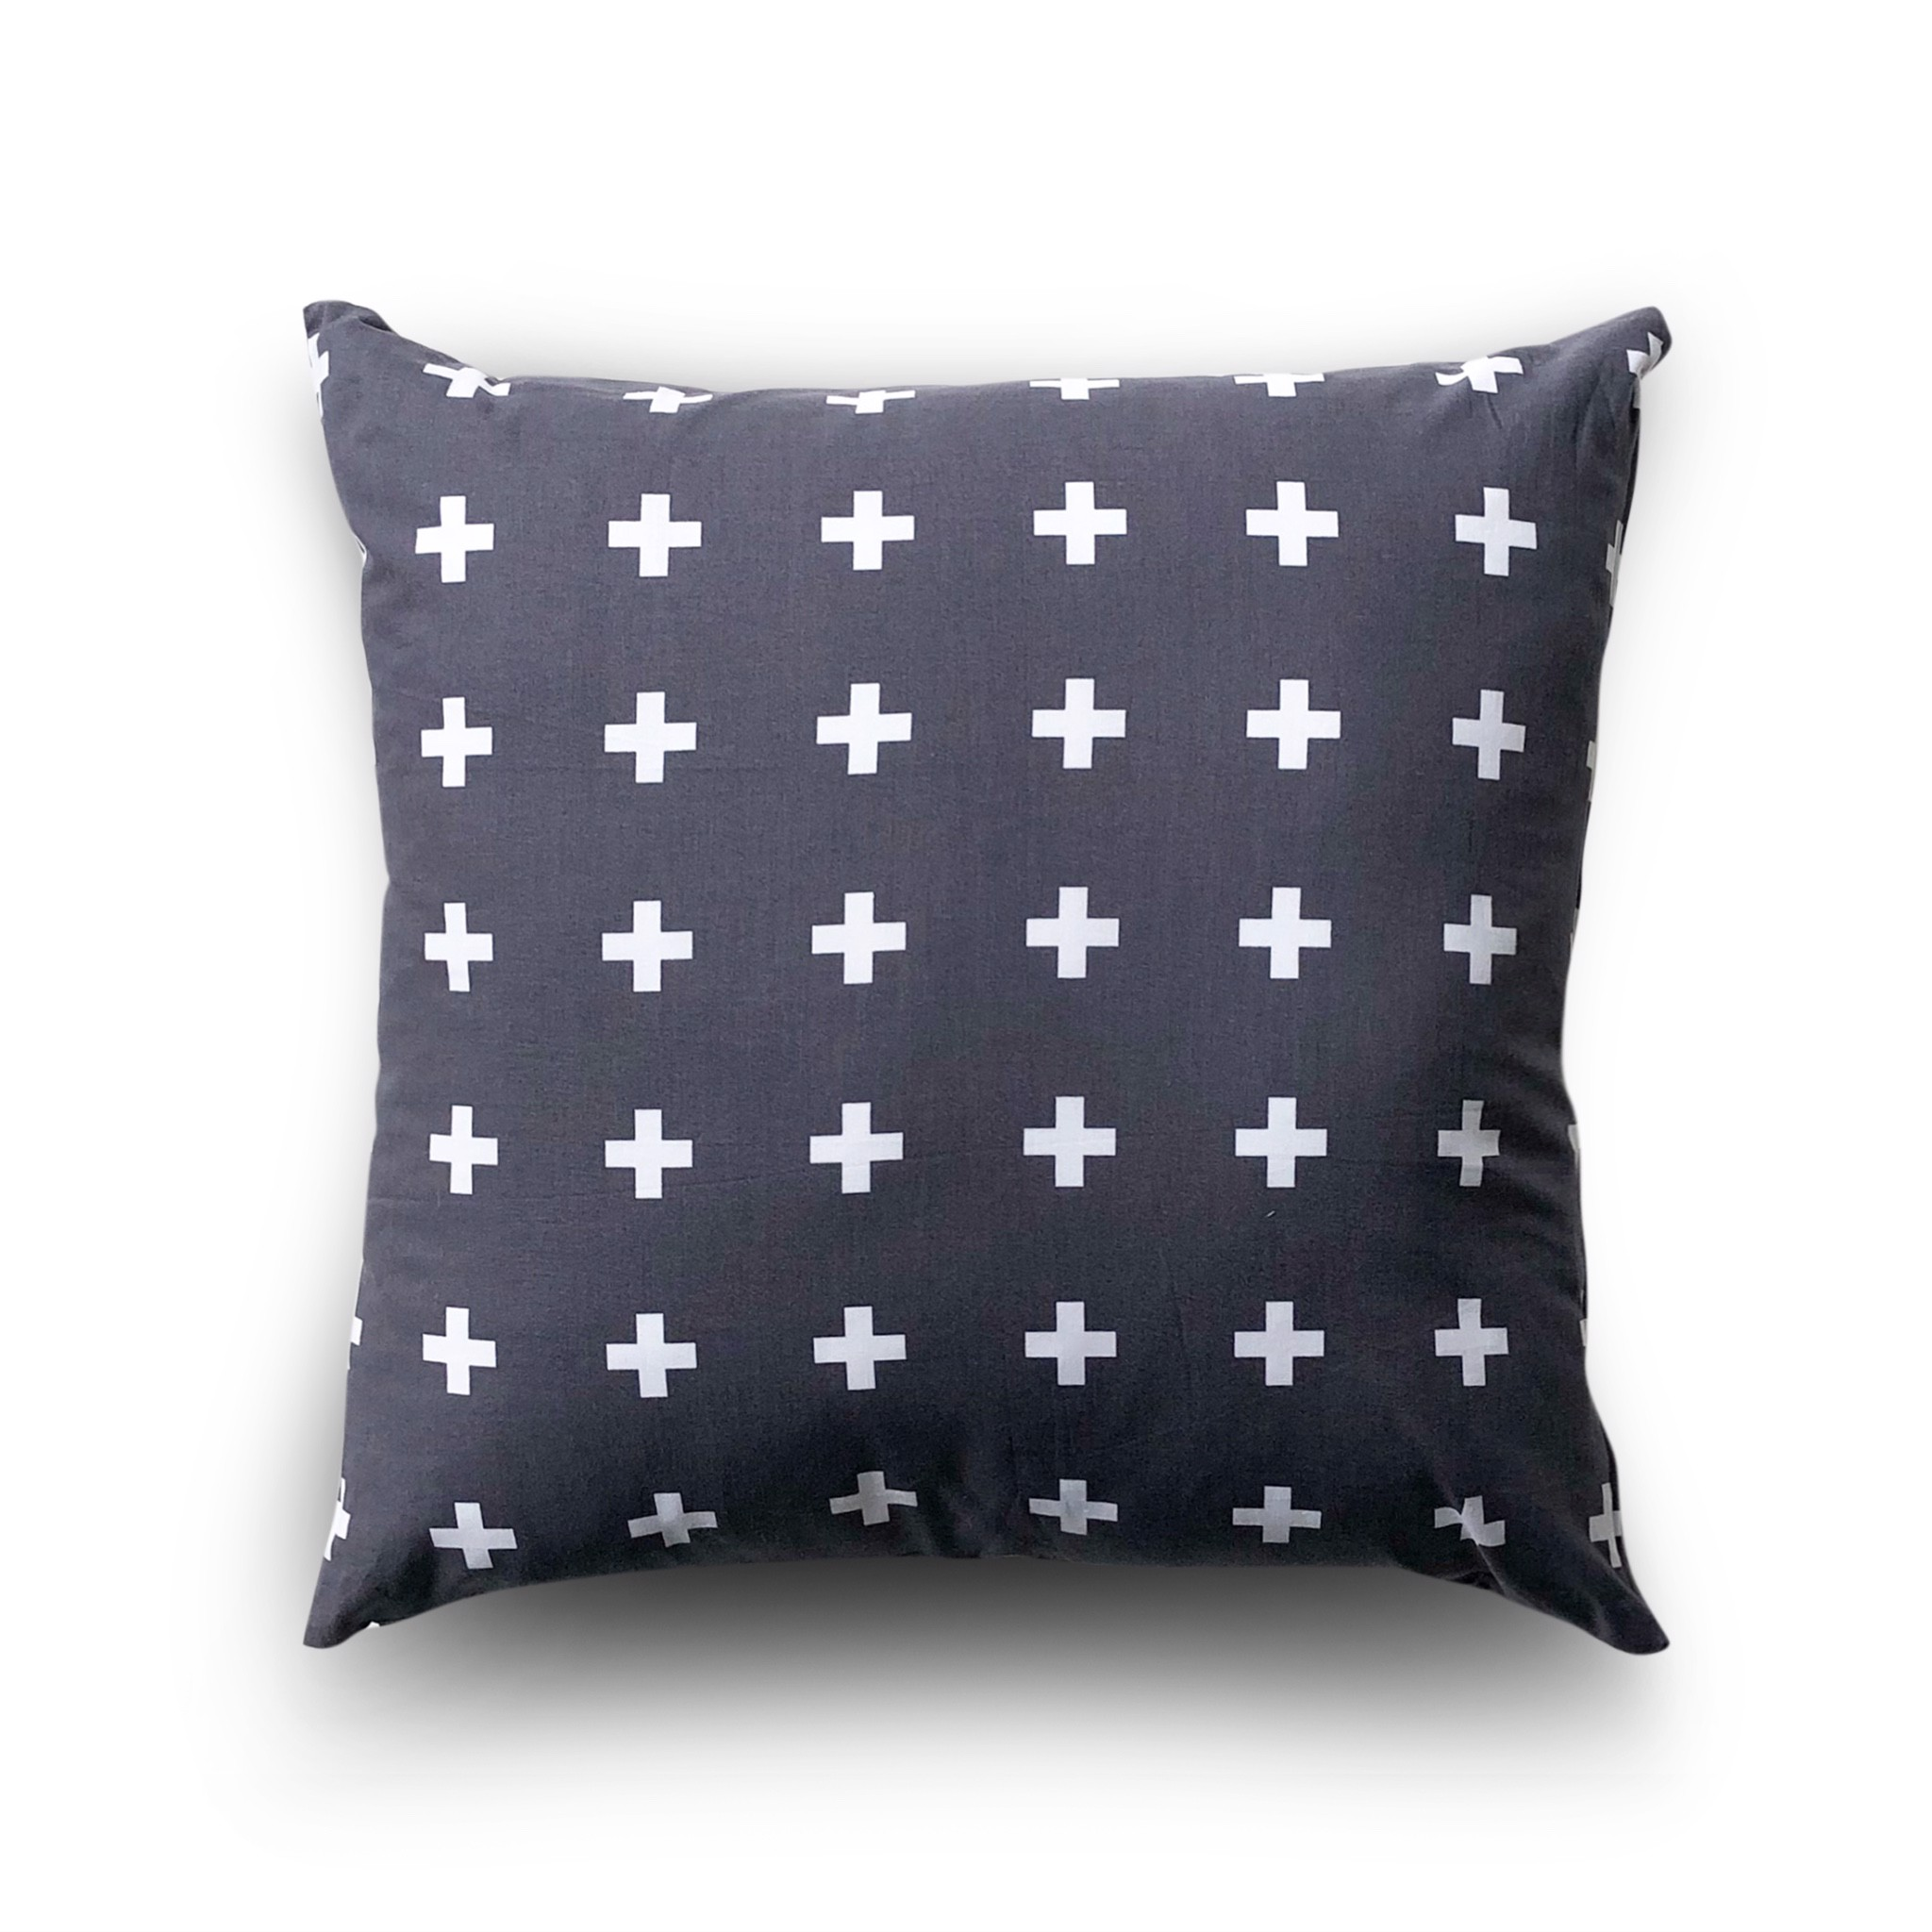 Cushion cover 66 White plus on dark grey